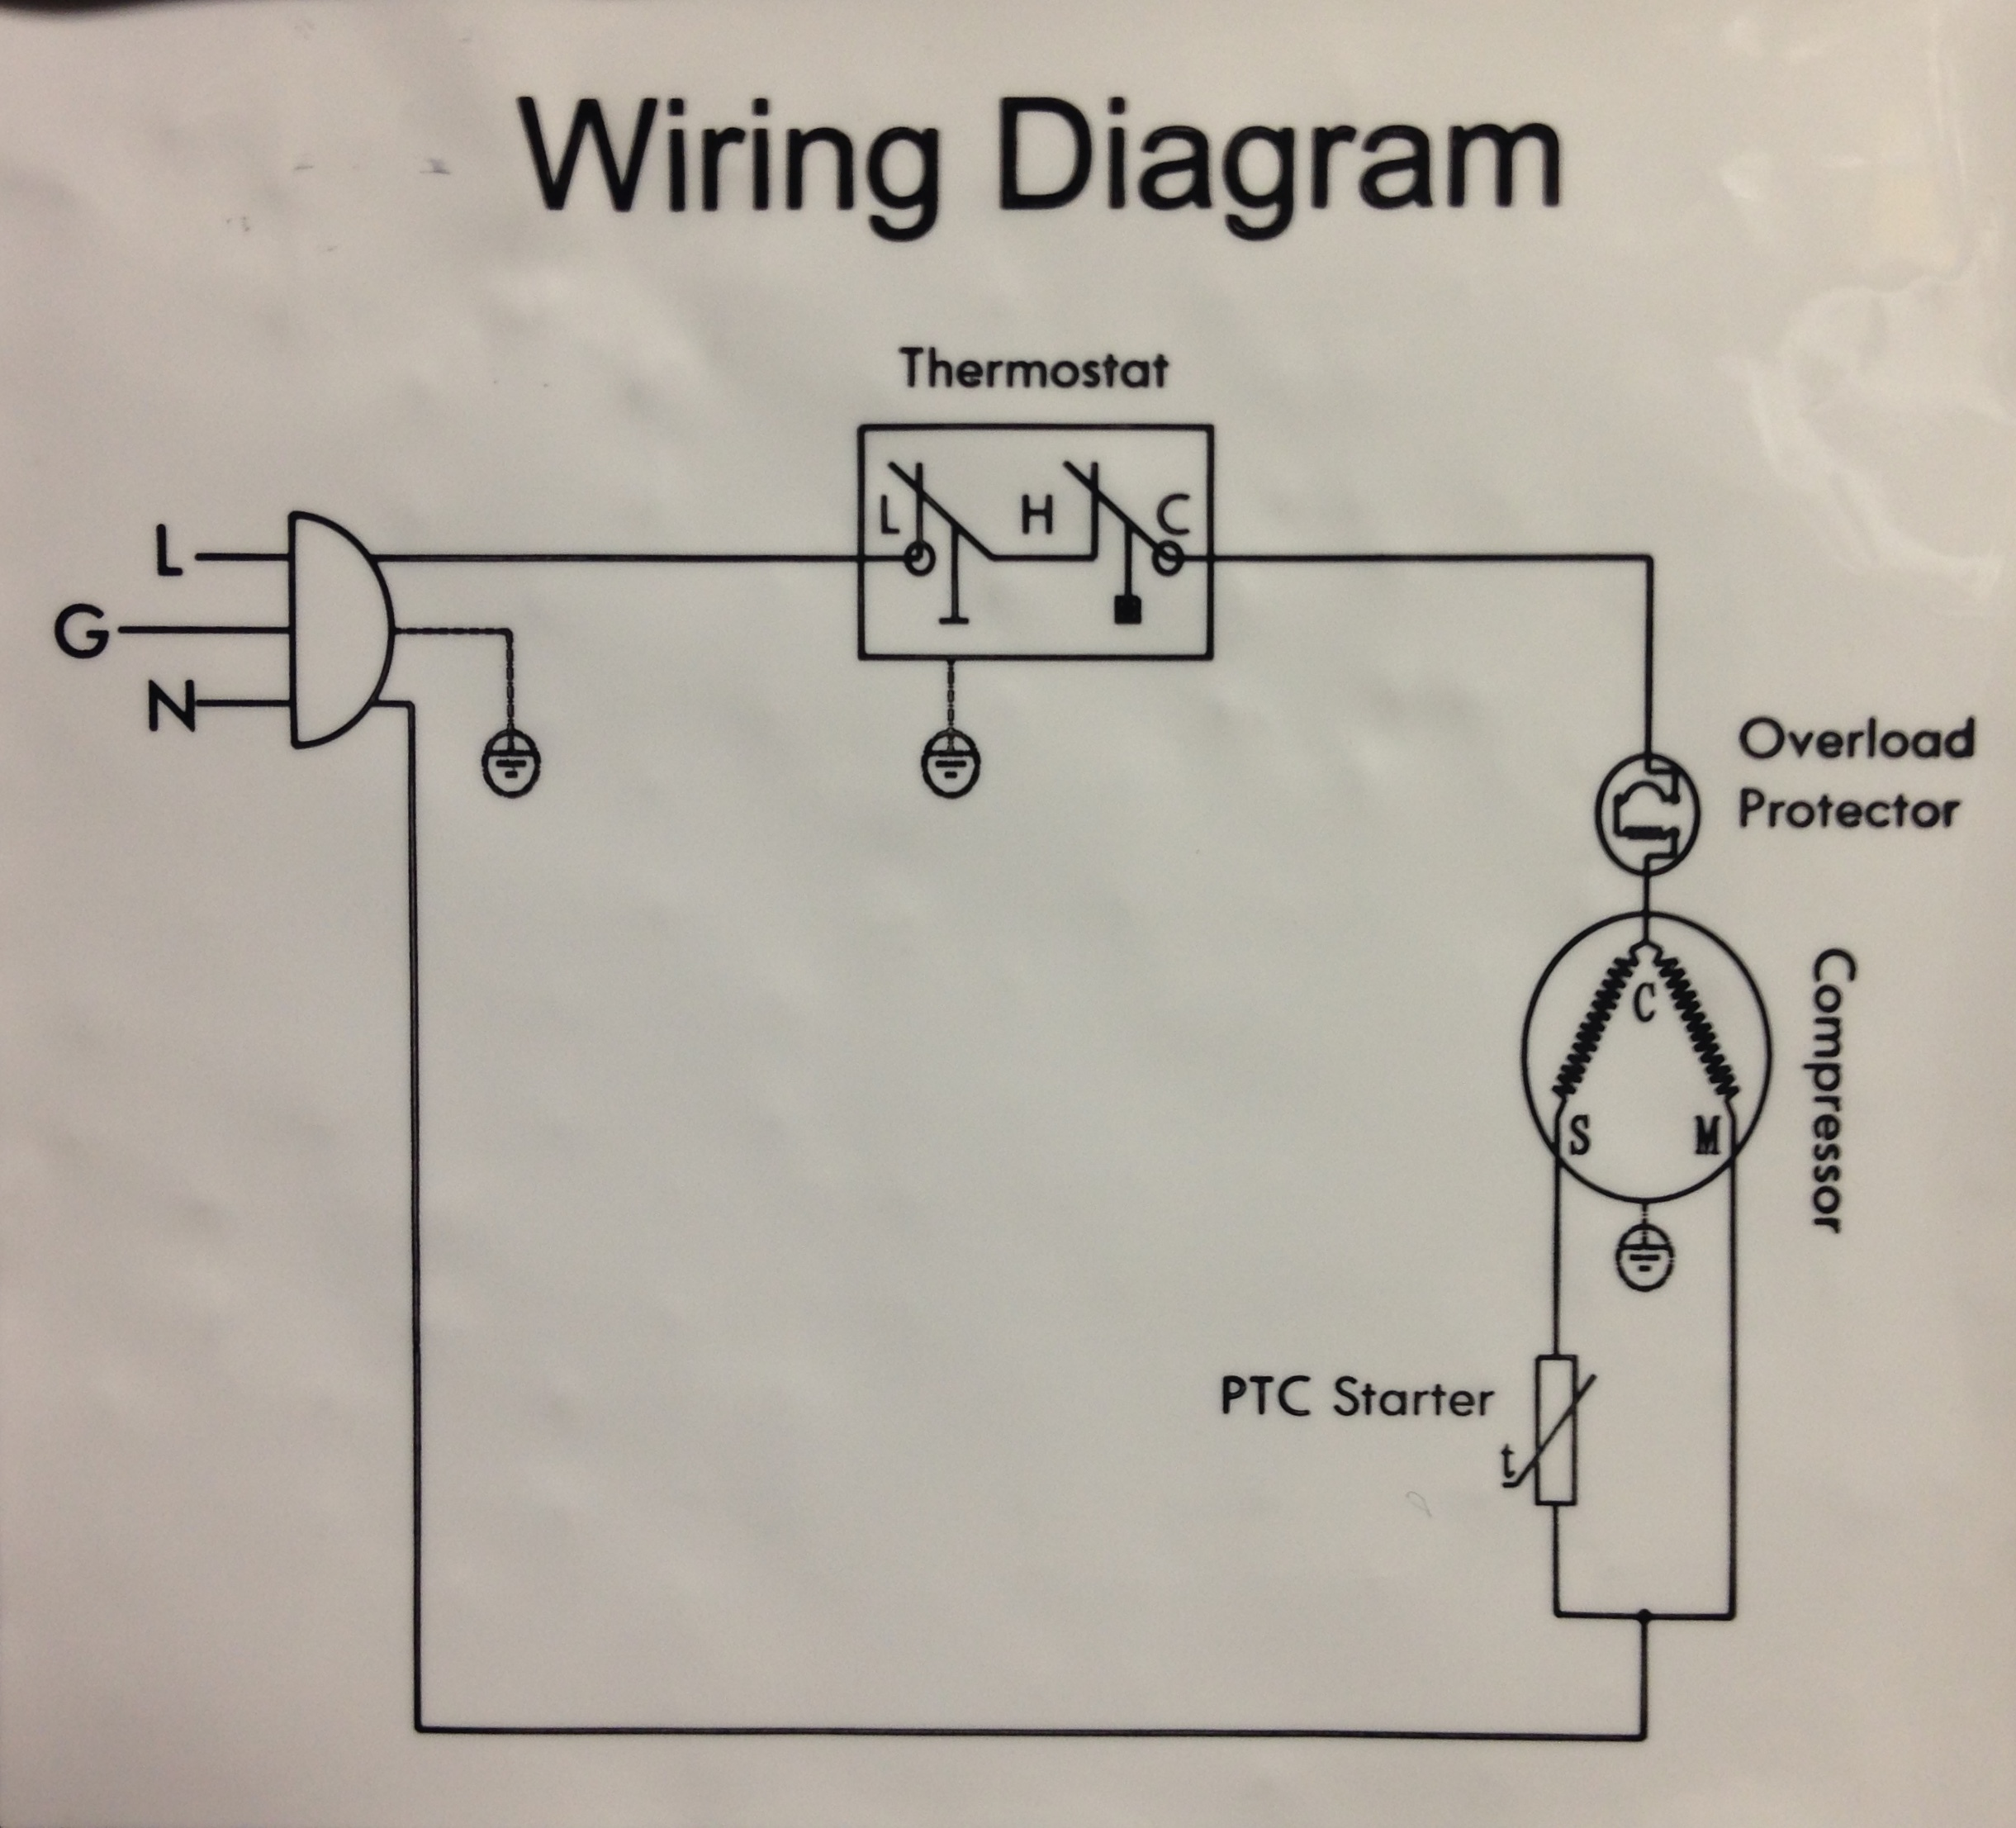 new build electronics newb diagram help fridge build brewpi rh community brewpi com Honeywell Thermostat Wiring Diagram wiring a fridge freezer thermostat